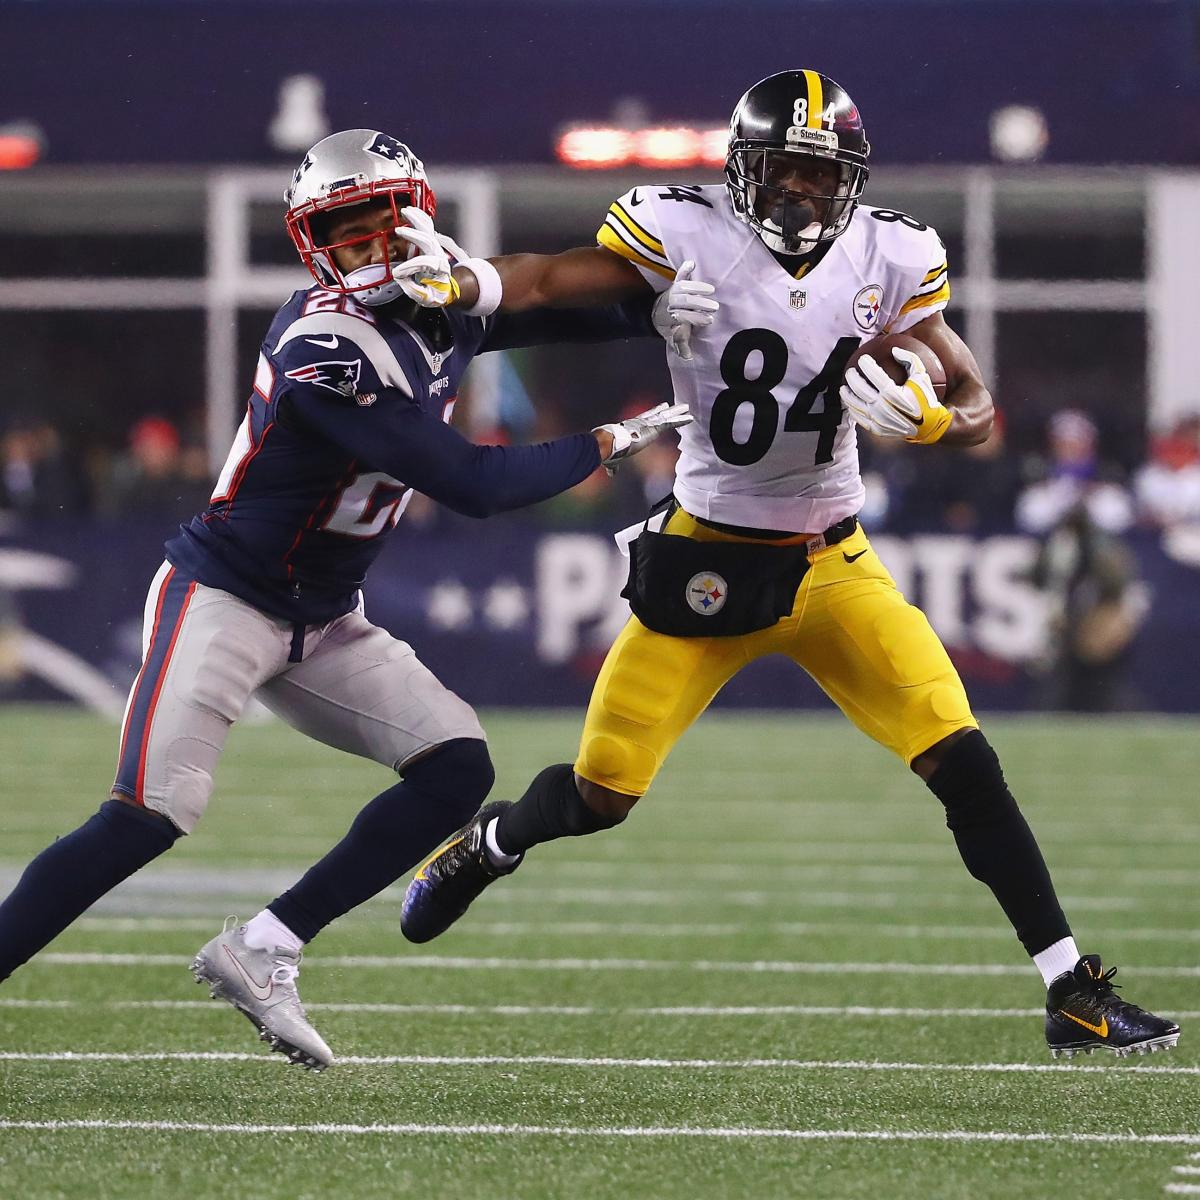 Pittsburgh Steelers Mike Tomlin S New Contract Ushers In: Antonio Brown's Contract, Behavior Addressed By Steelers